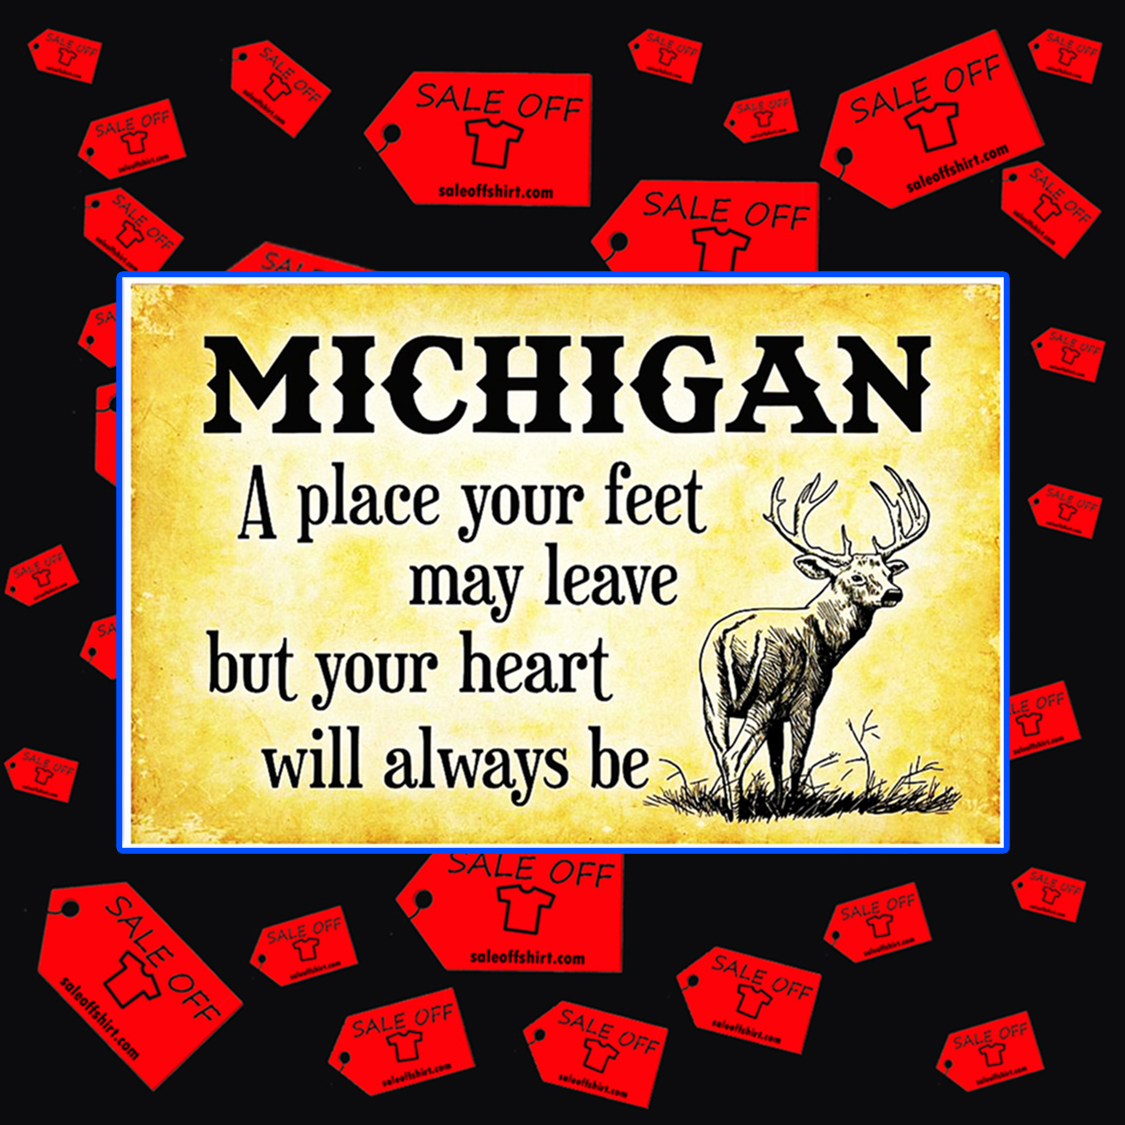 Michigan a place your feet may leave but your heart will always be poster 17x11